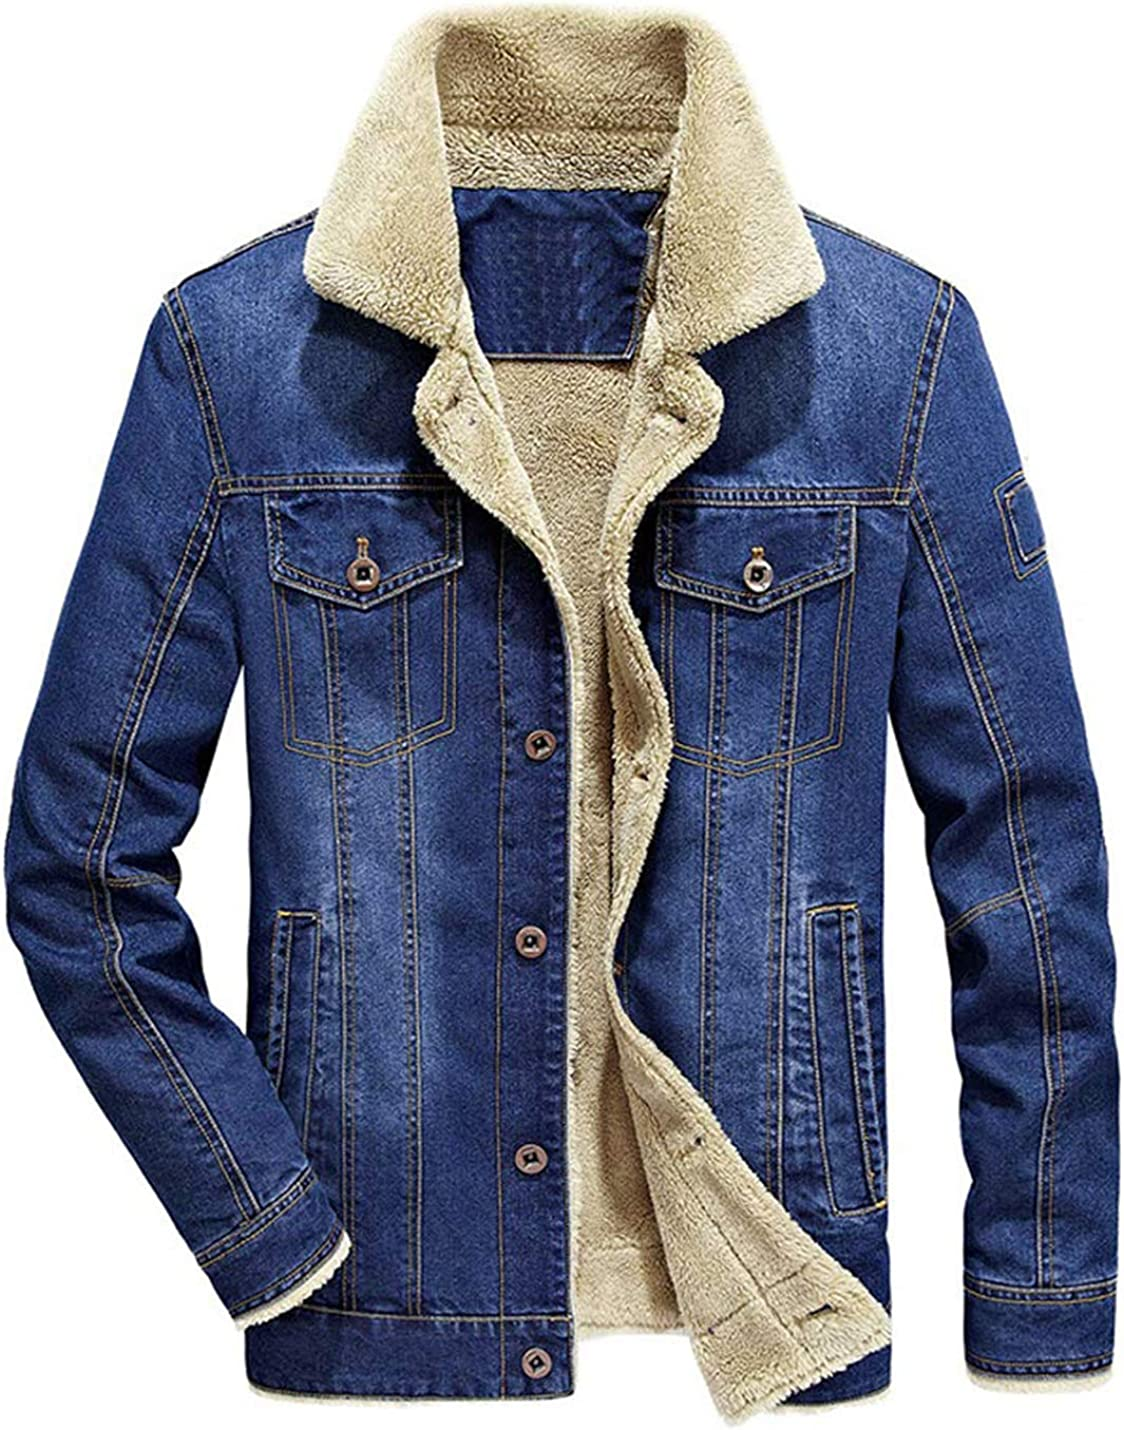 Omoone Mens Button Up Vintage Sherpa Fleece Lined Denim Biker Jacket Jean Coat